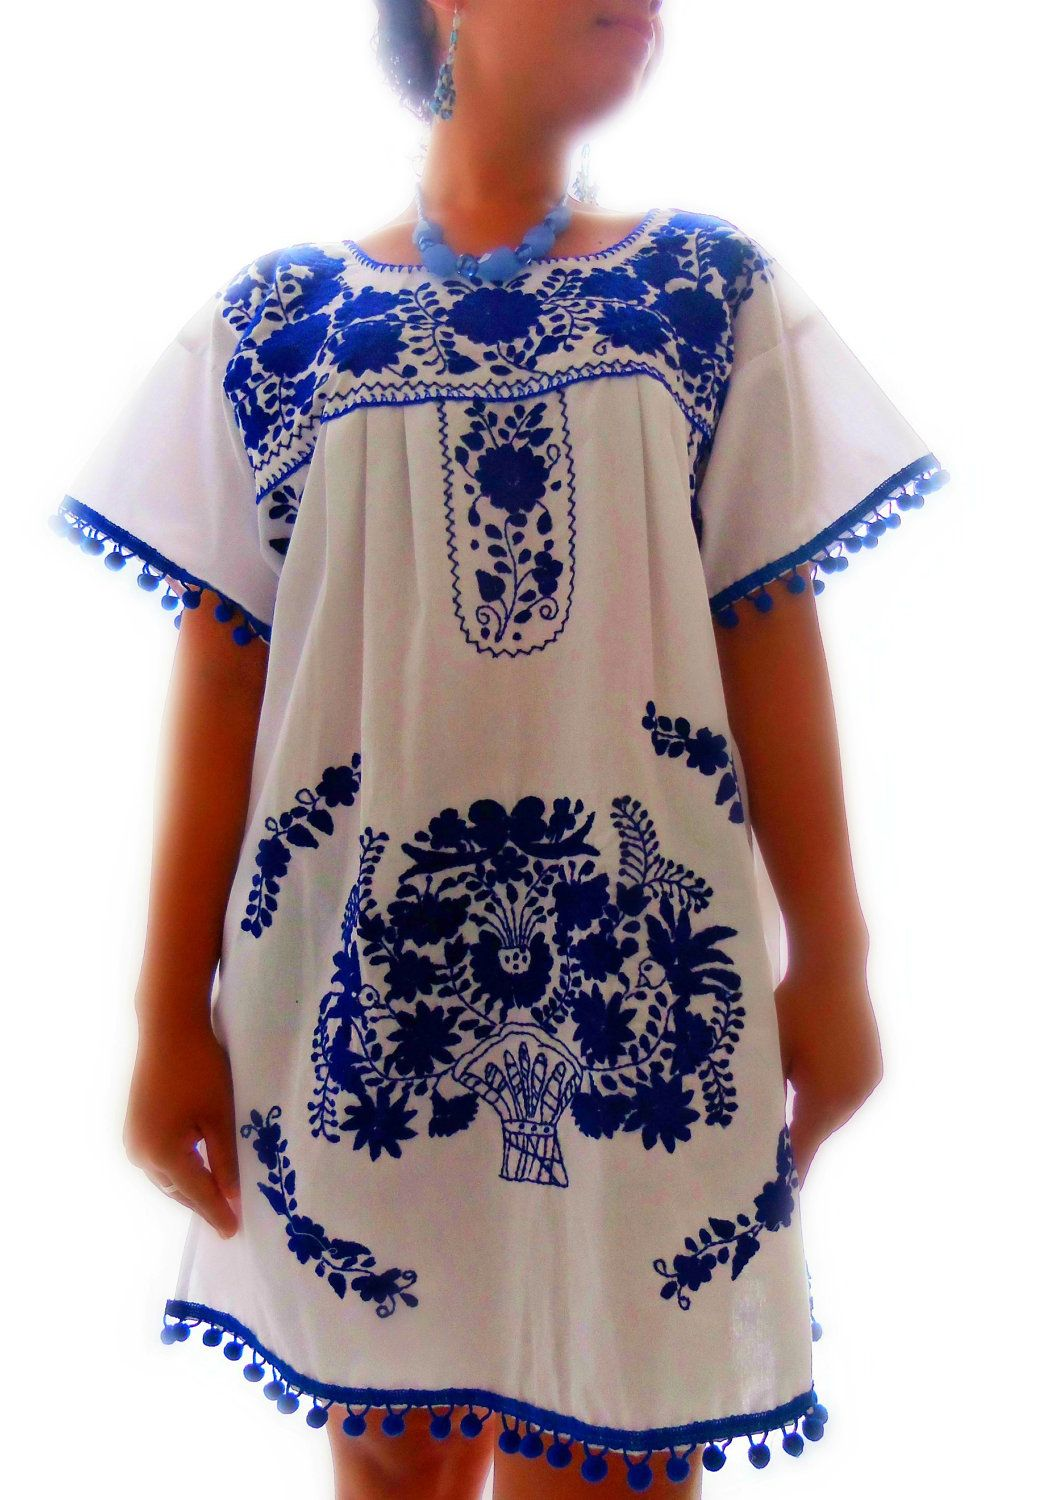 Stunning mexican embroidered dress would be so cute on my 15 year old  daughter .navy